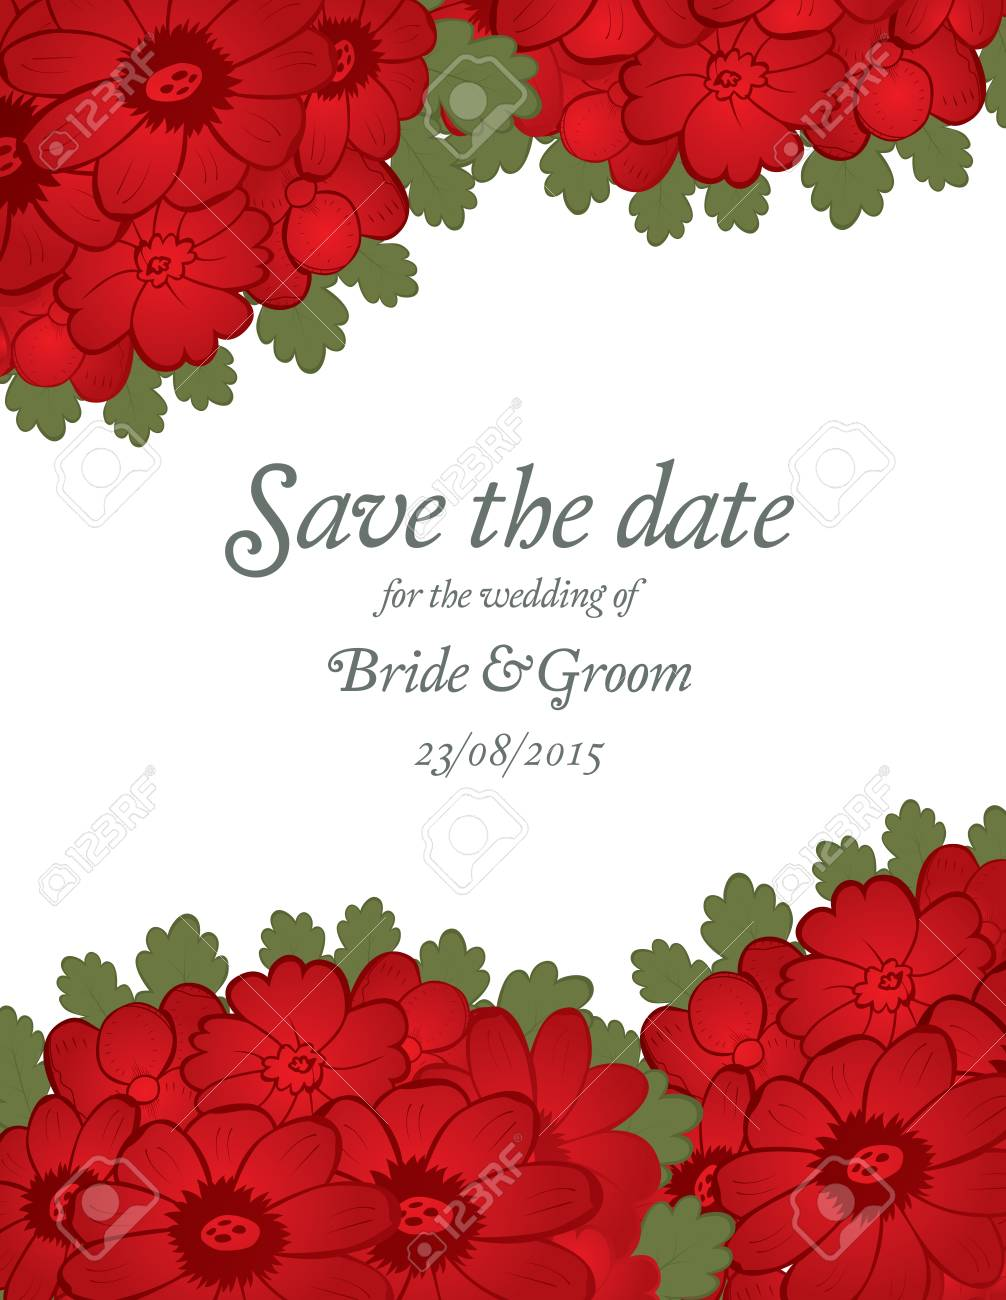 Save The Date Wedding Invitation Card Template With Red Flowers ...